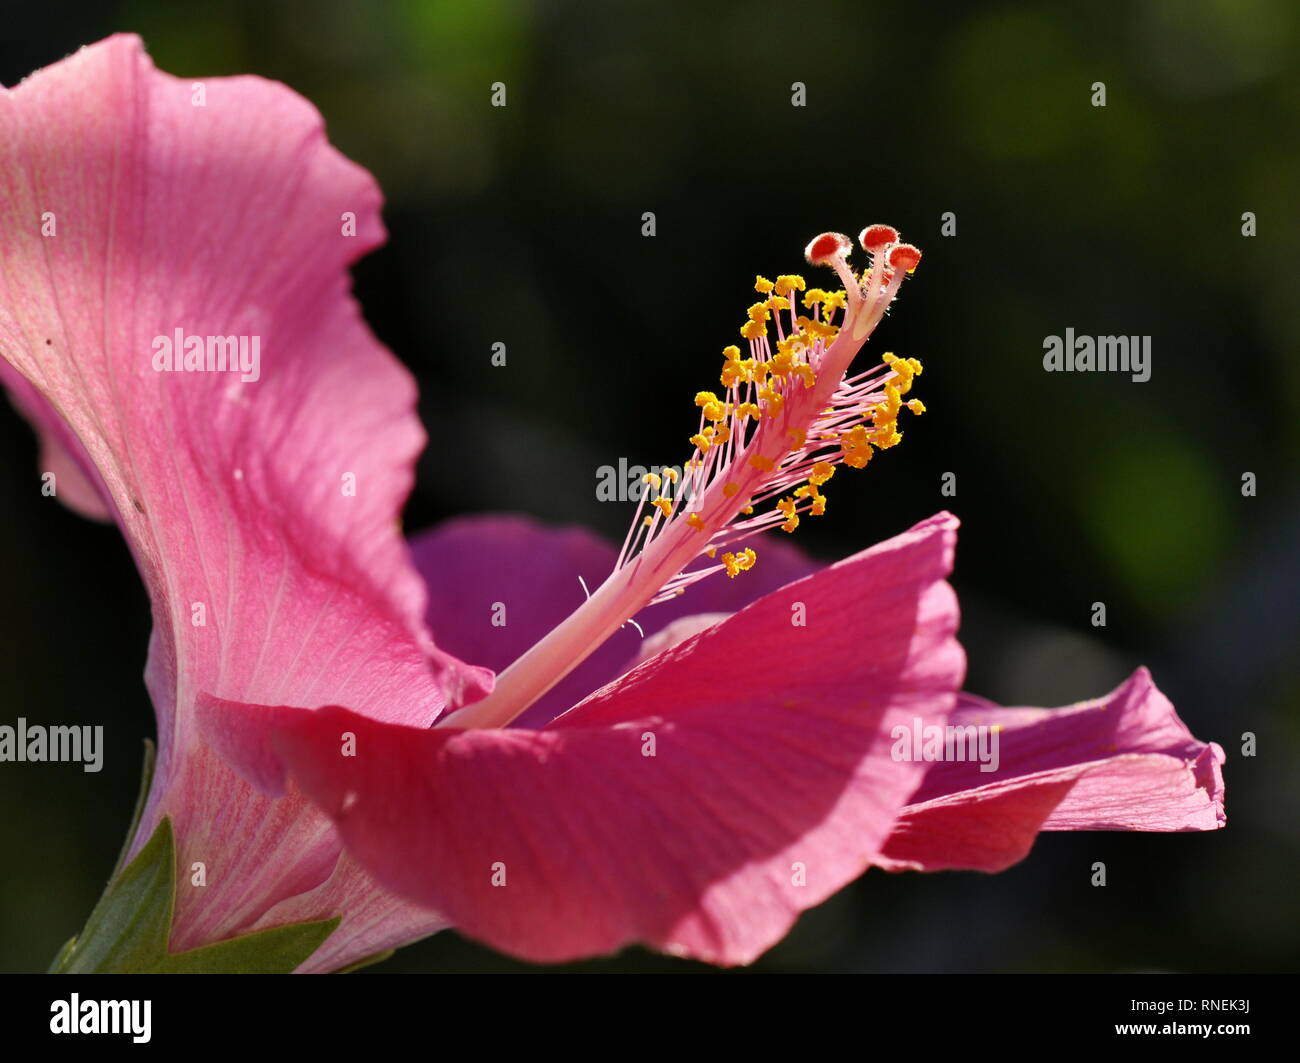 Closeup On The Reproductive Parts Of A Hibiscus Flower Stock Photo